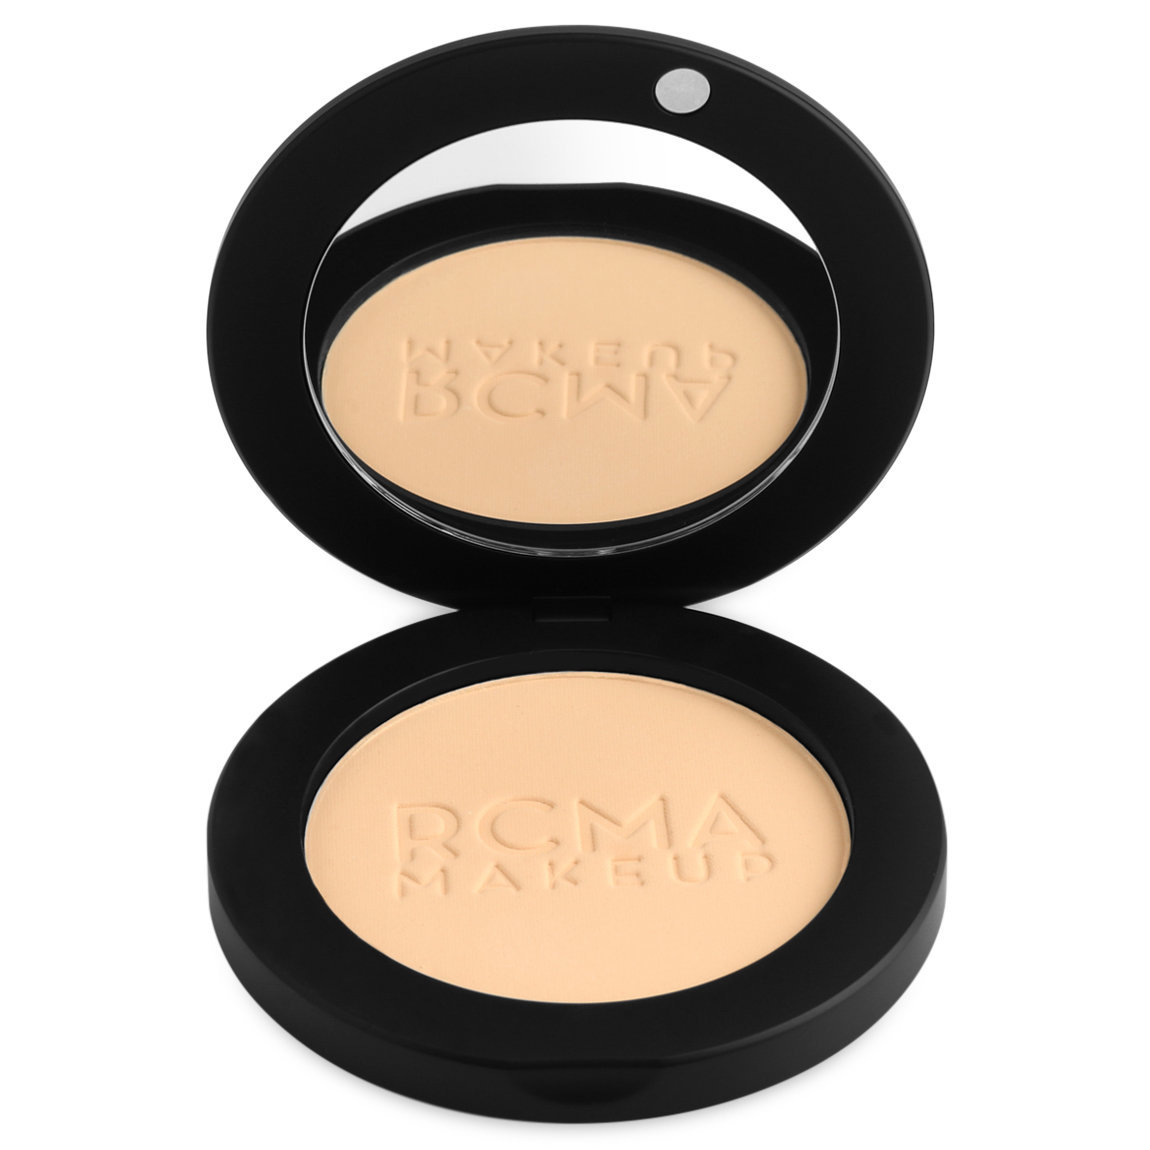 RCMA Makeup Premiere Pressed Powder Amber alternative view 1 - product swatch.